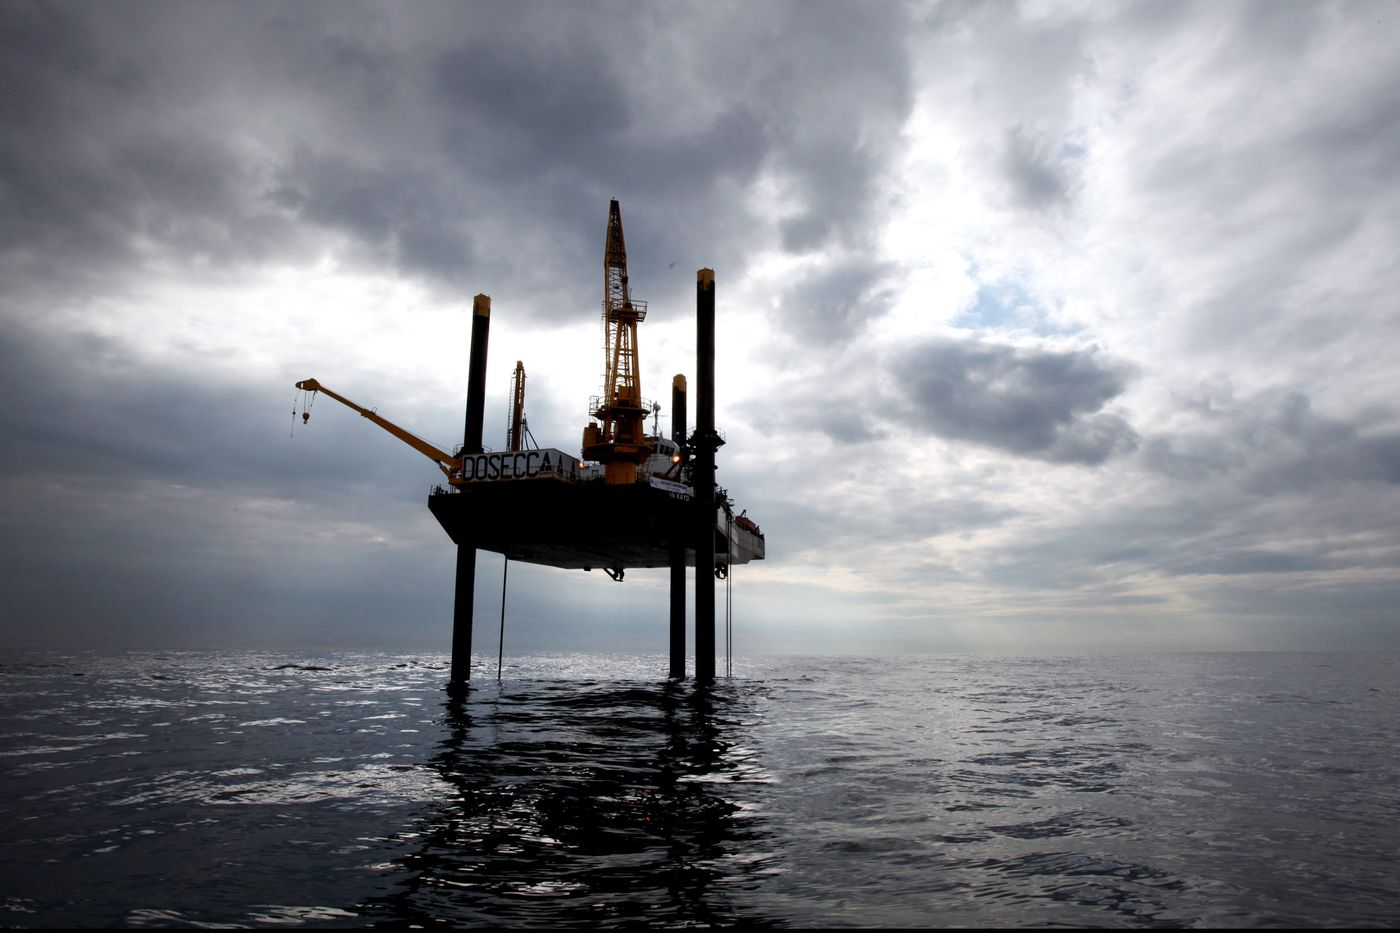 New Jersey sues U.S.: Why was Florida exempted from offshore drilling?